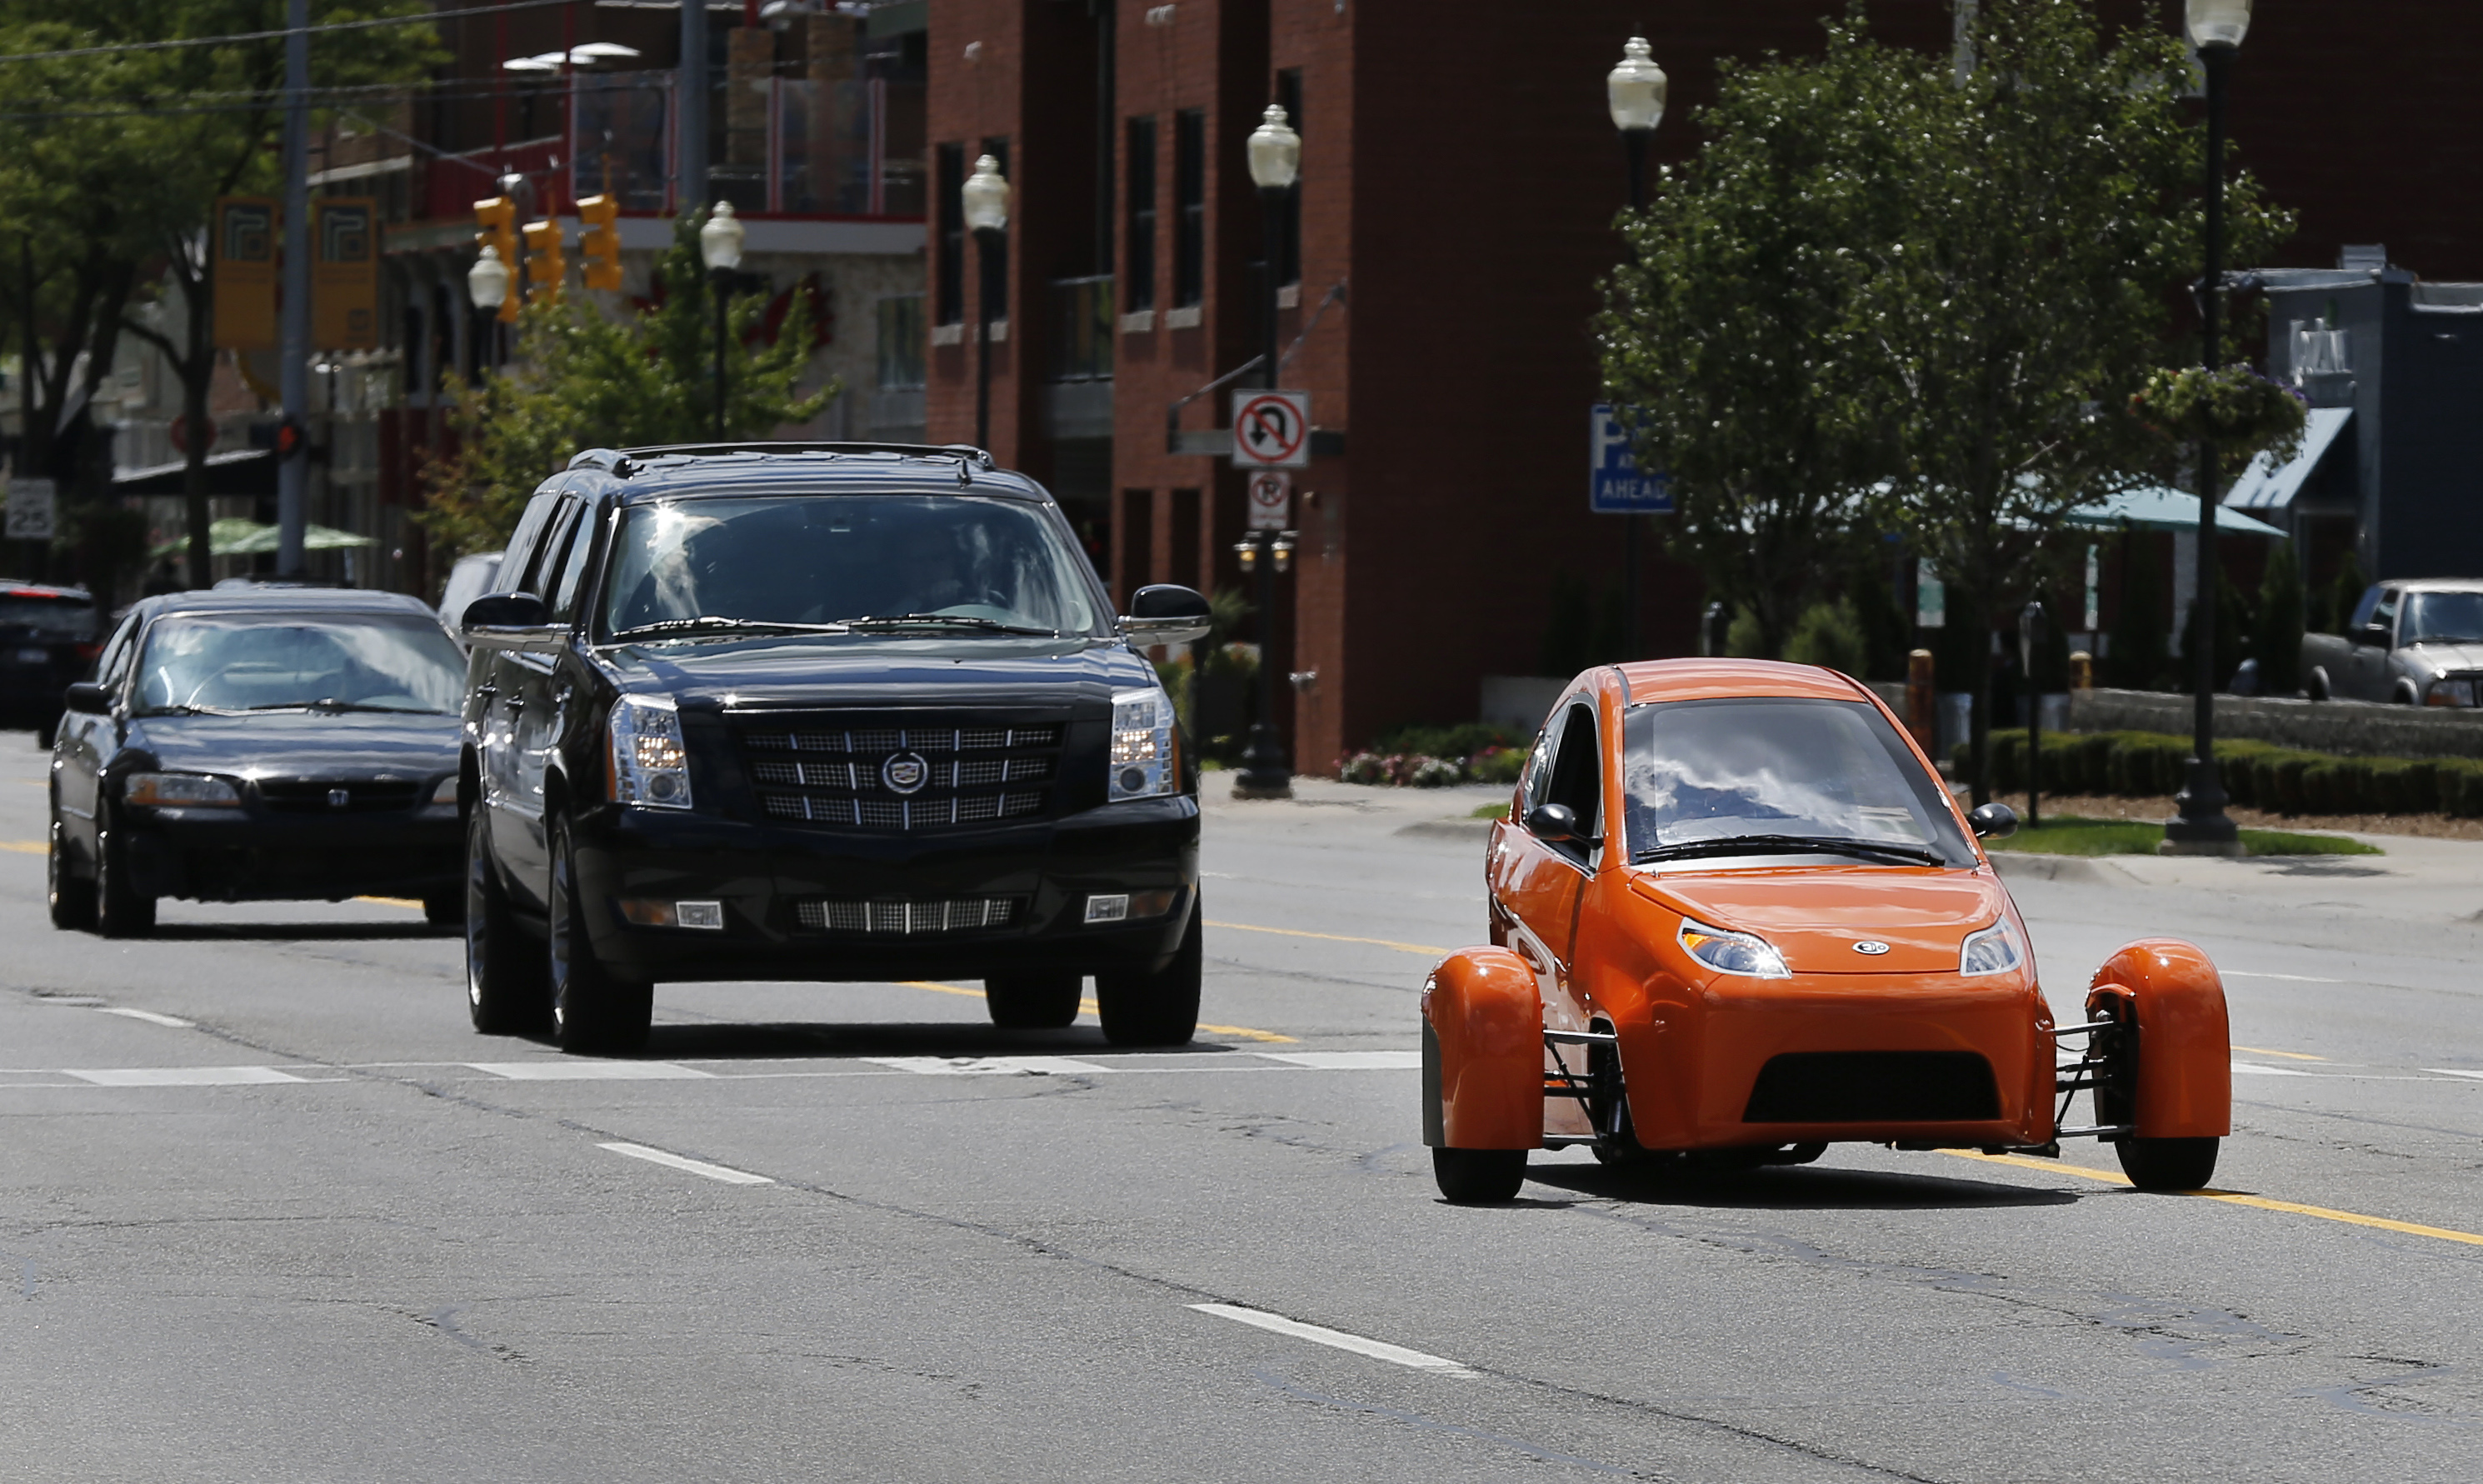 3-wheeled, high-mileage vehicle nears 2016 launch - The Blade